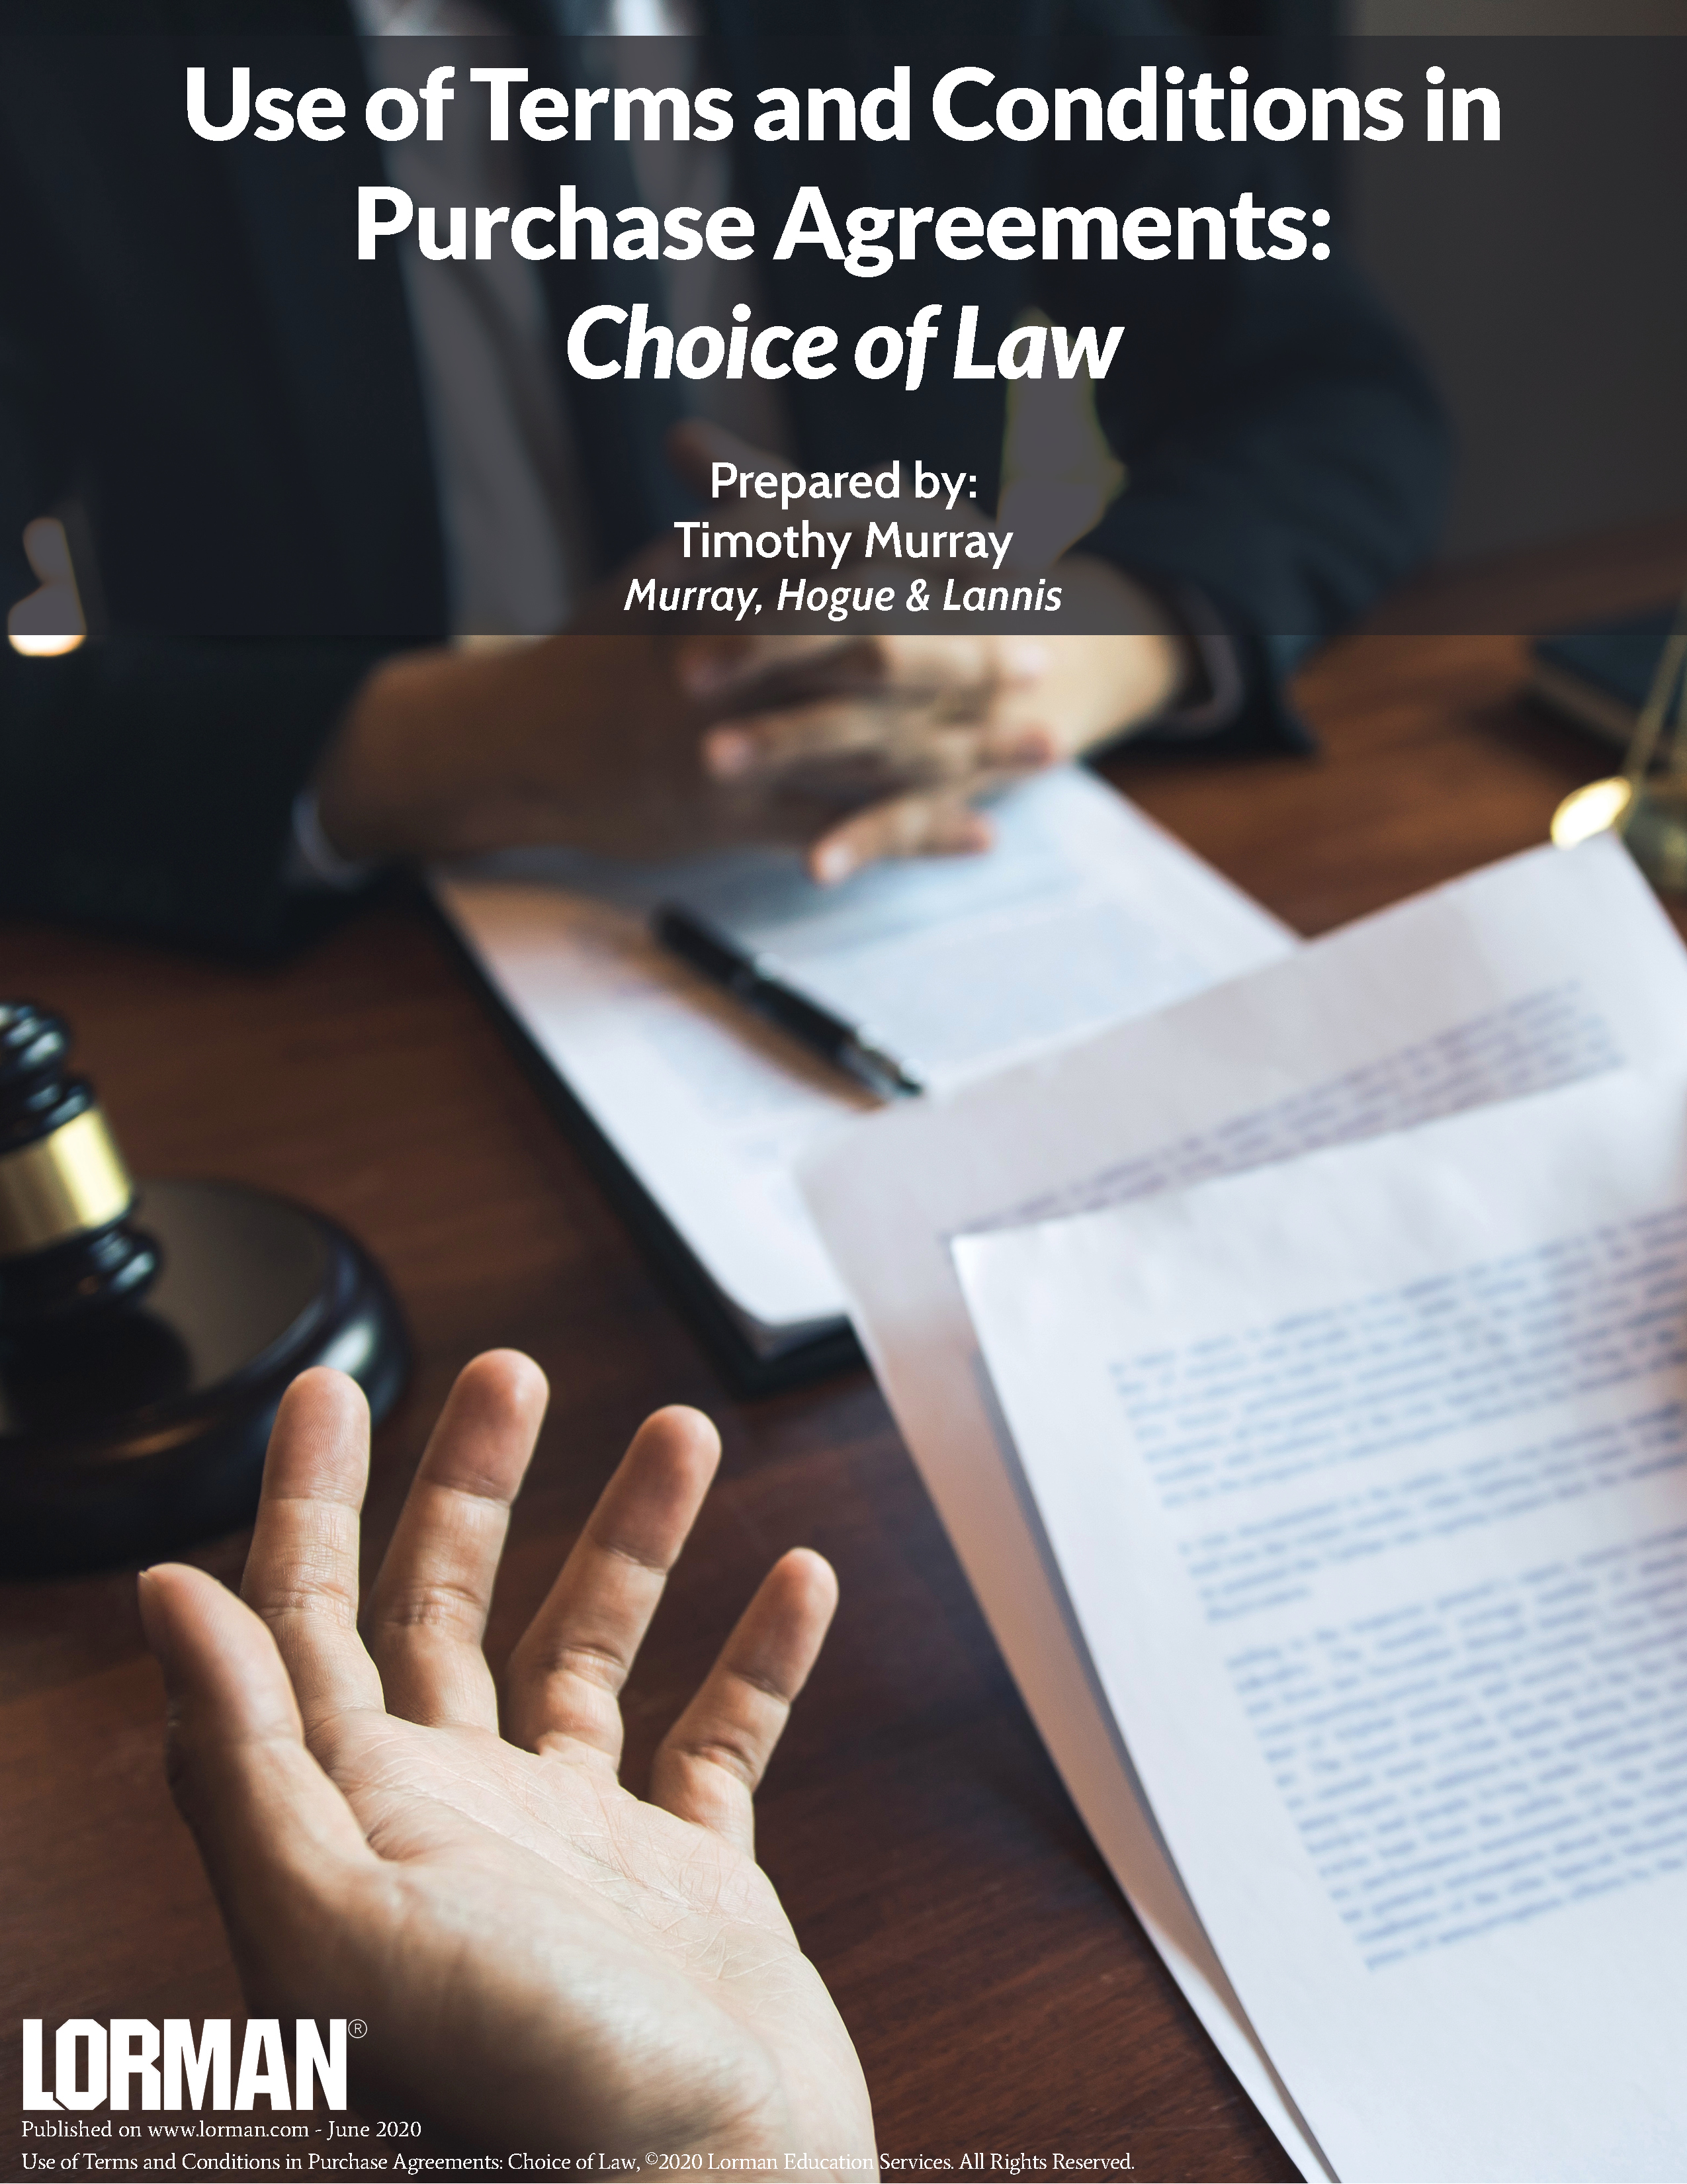 Use of Terms and Conditions in Purchase Agreements: Choice of Law